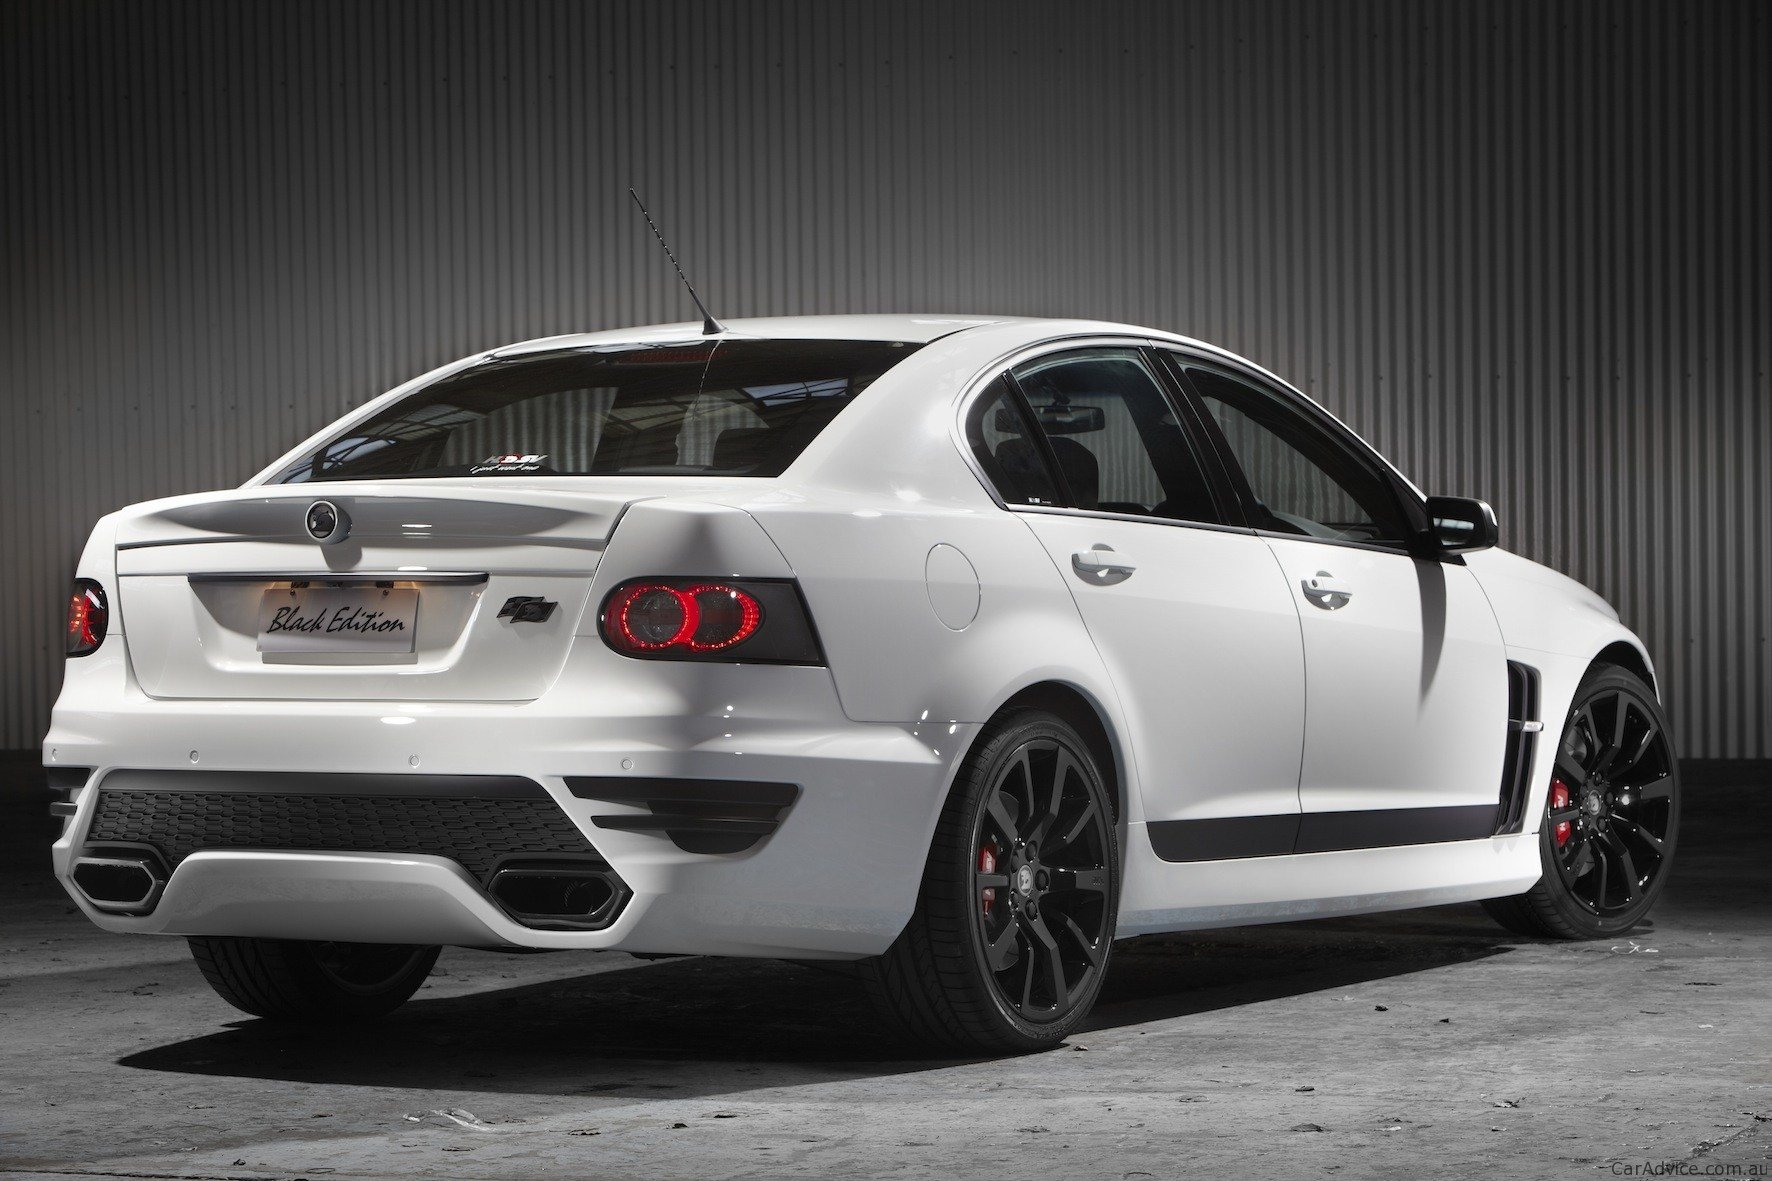 New 2011 Hsv Clubsport R8 Clubsport R8 Tourer Maloo R8 Sv Black Edition At Australian On This Month